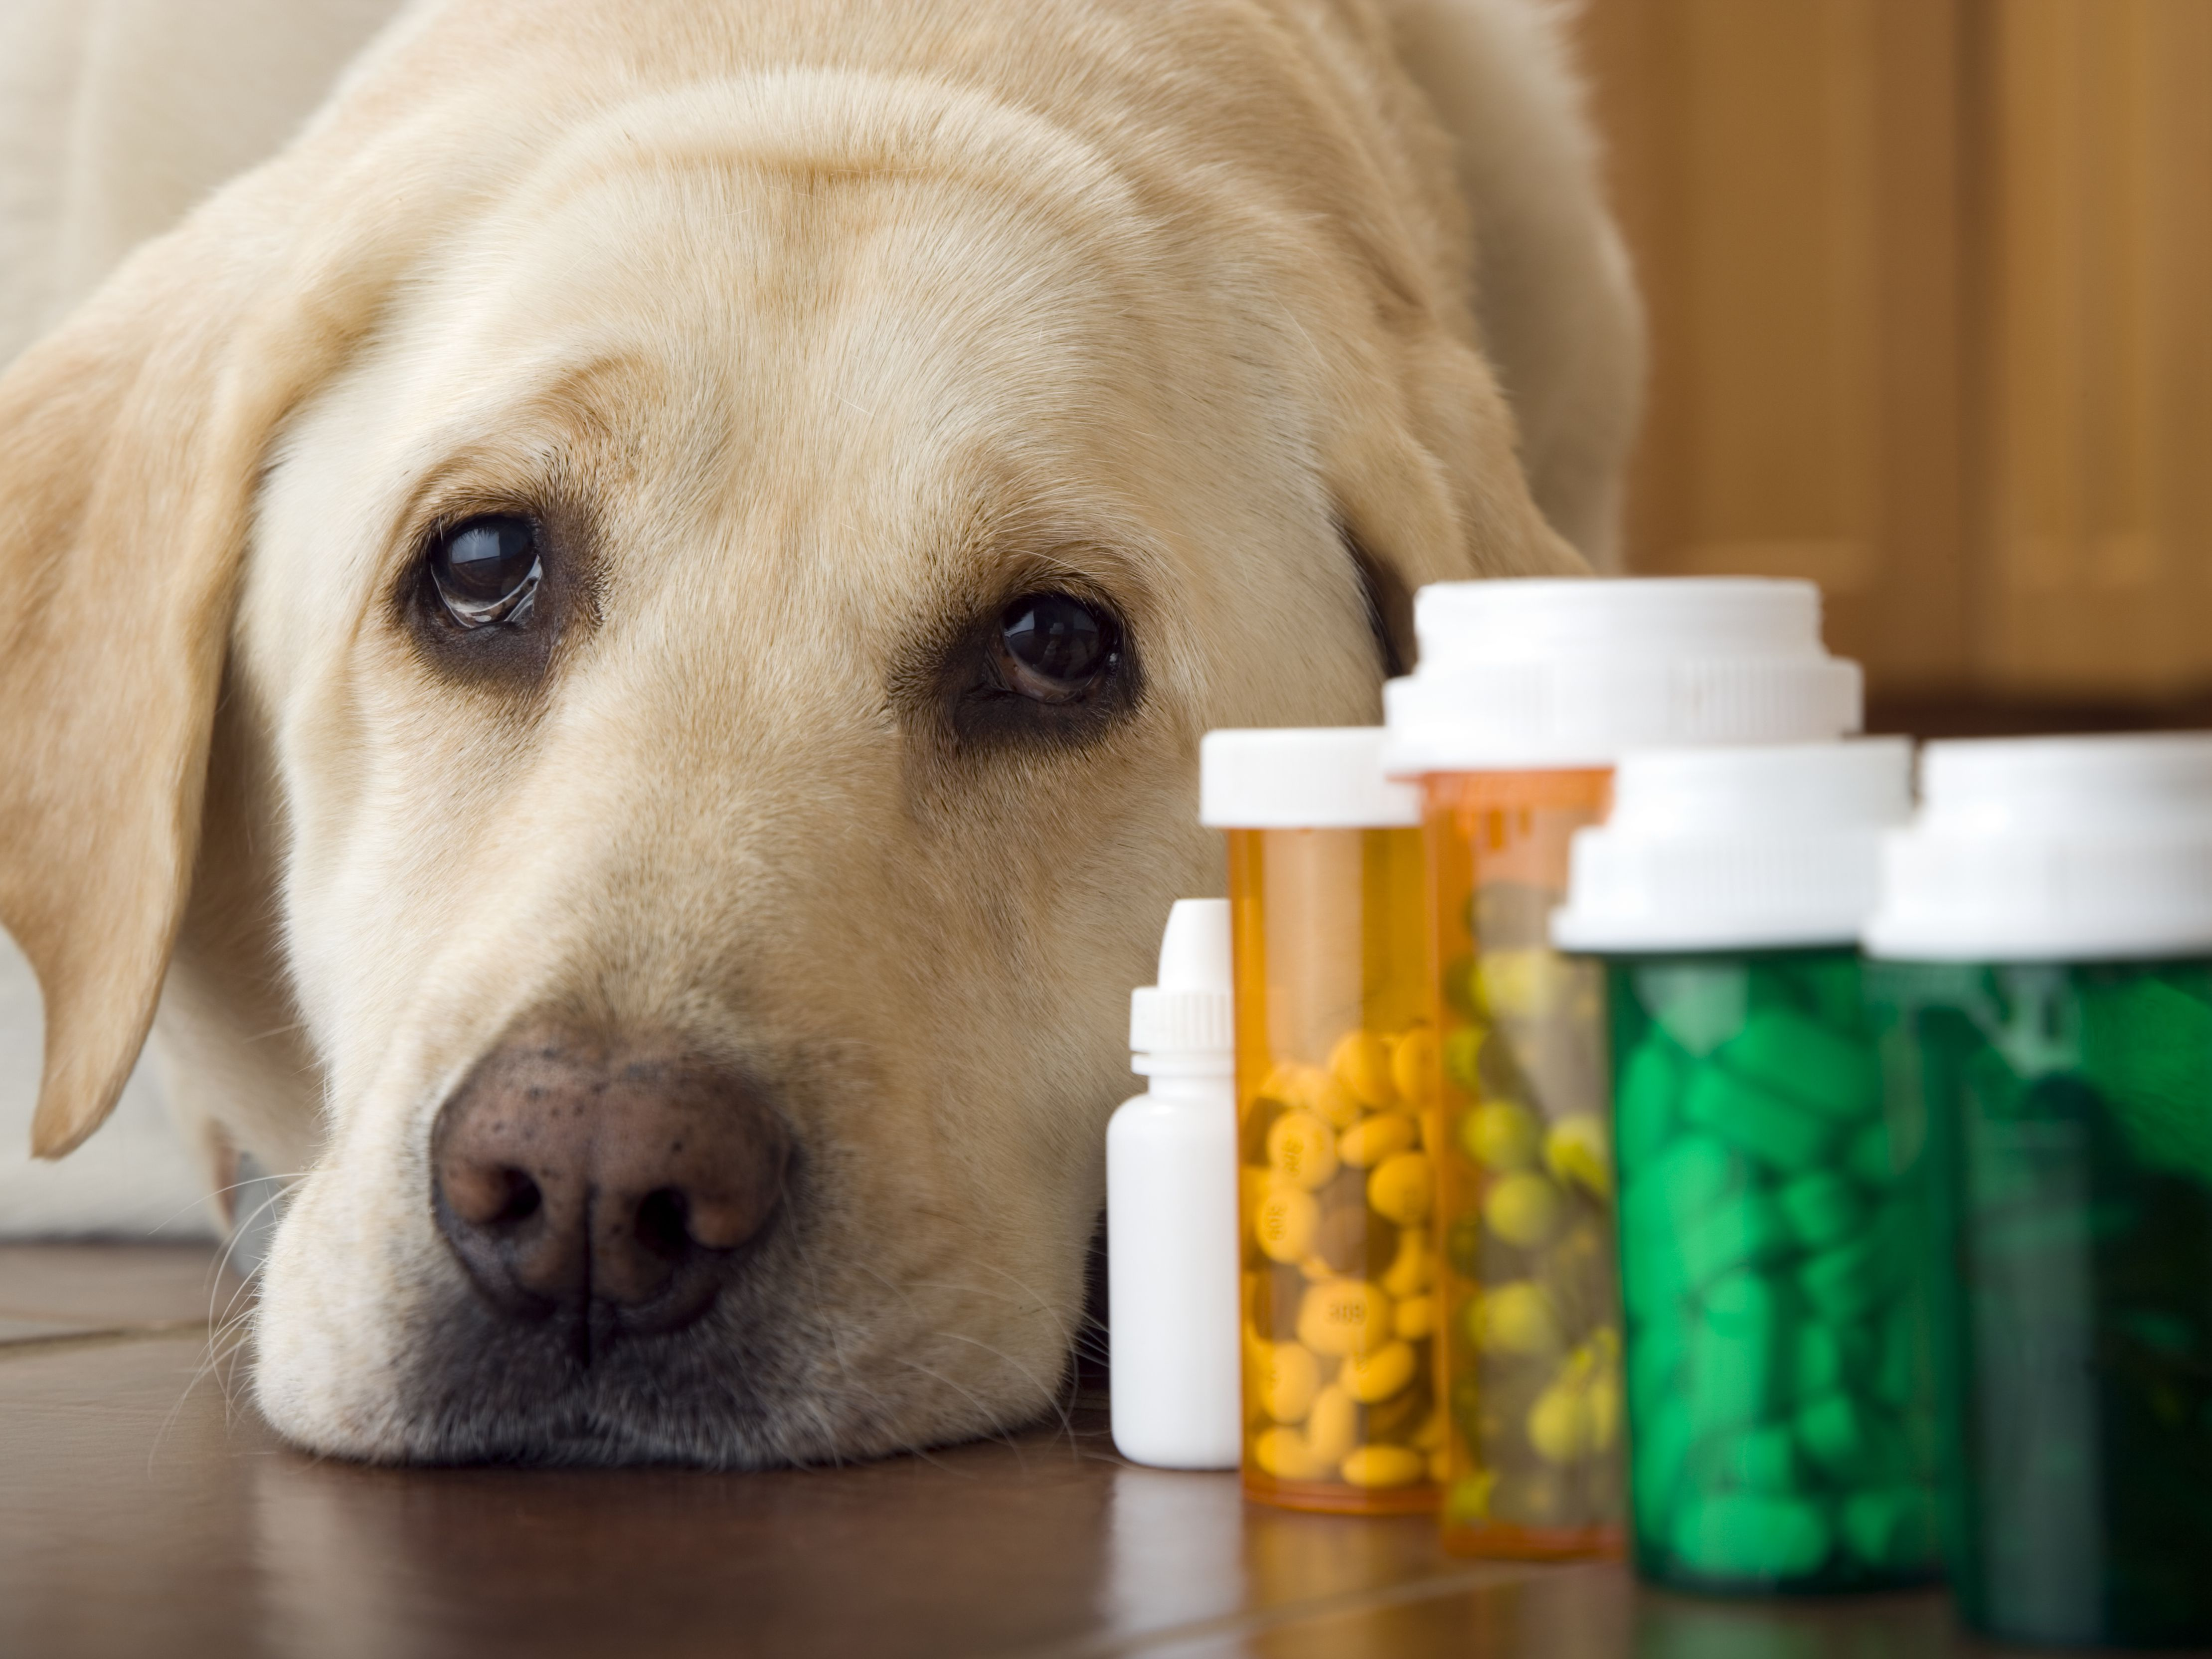 Pet Dietary Supplement Market Size Expected to Reach USD 6.13 BN By Forecast Year 2031